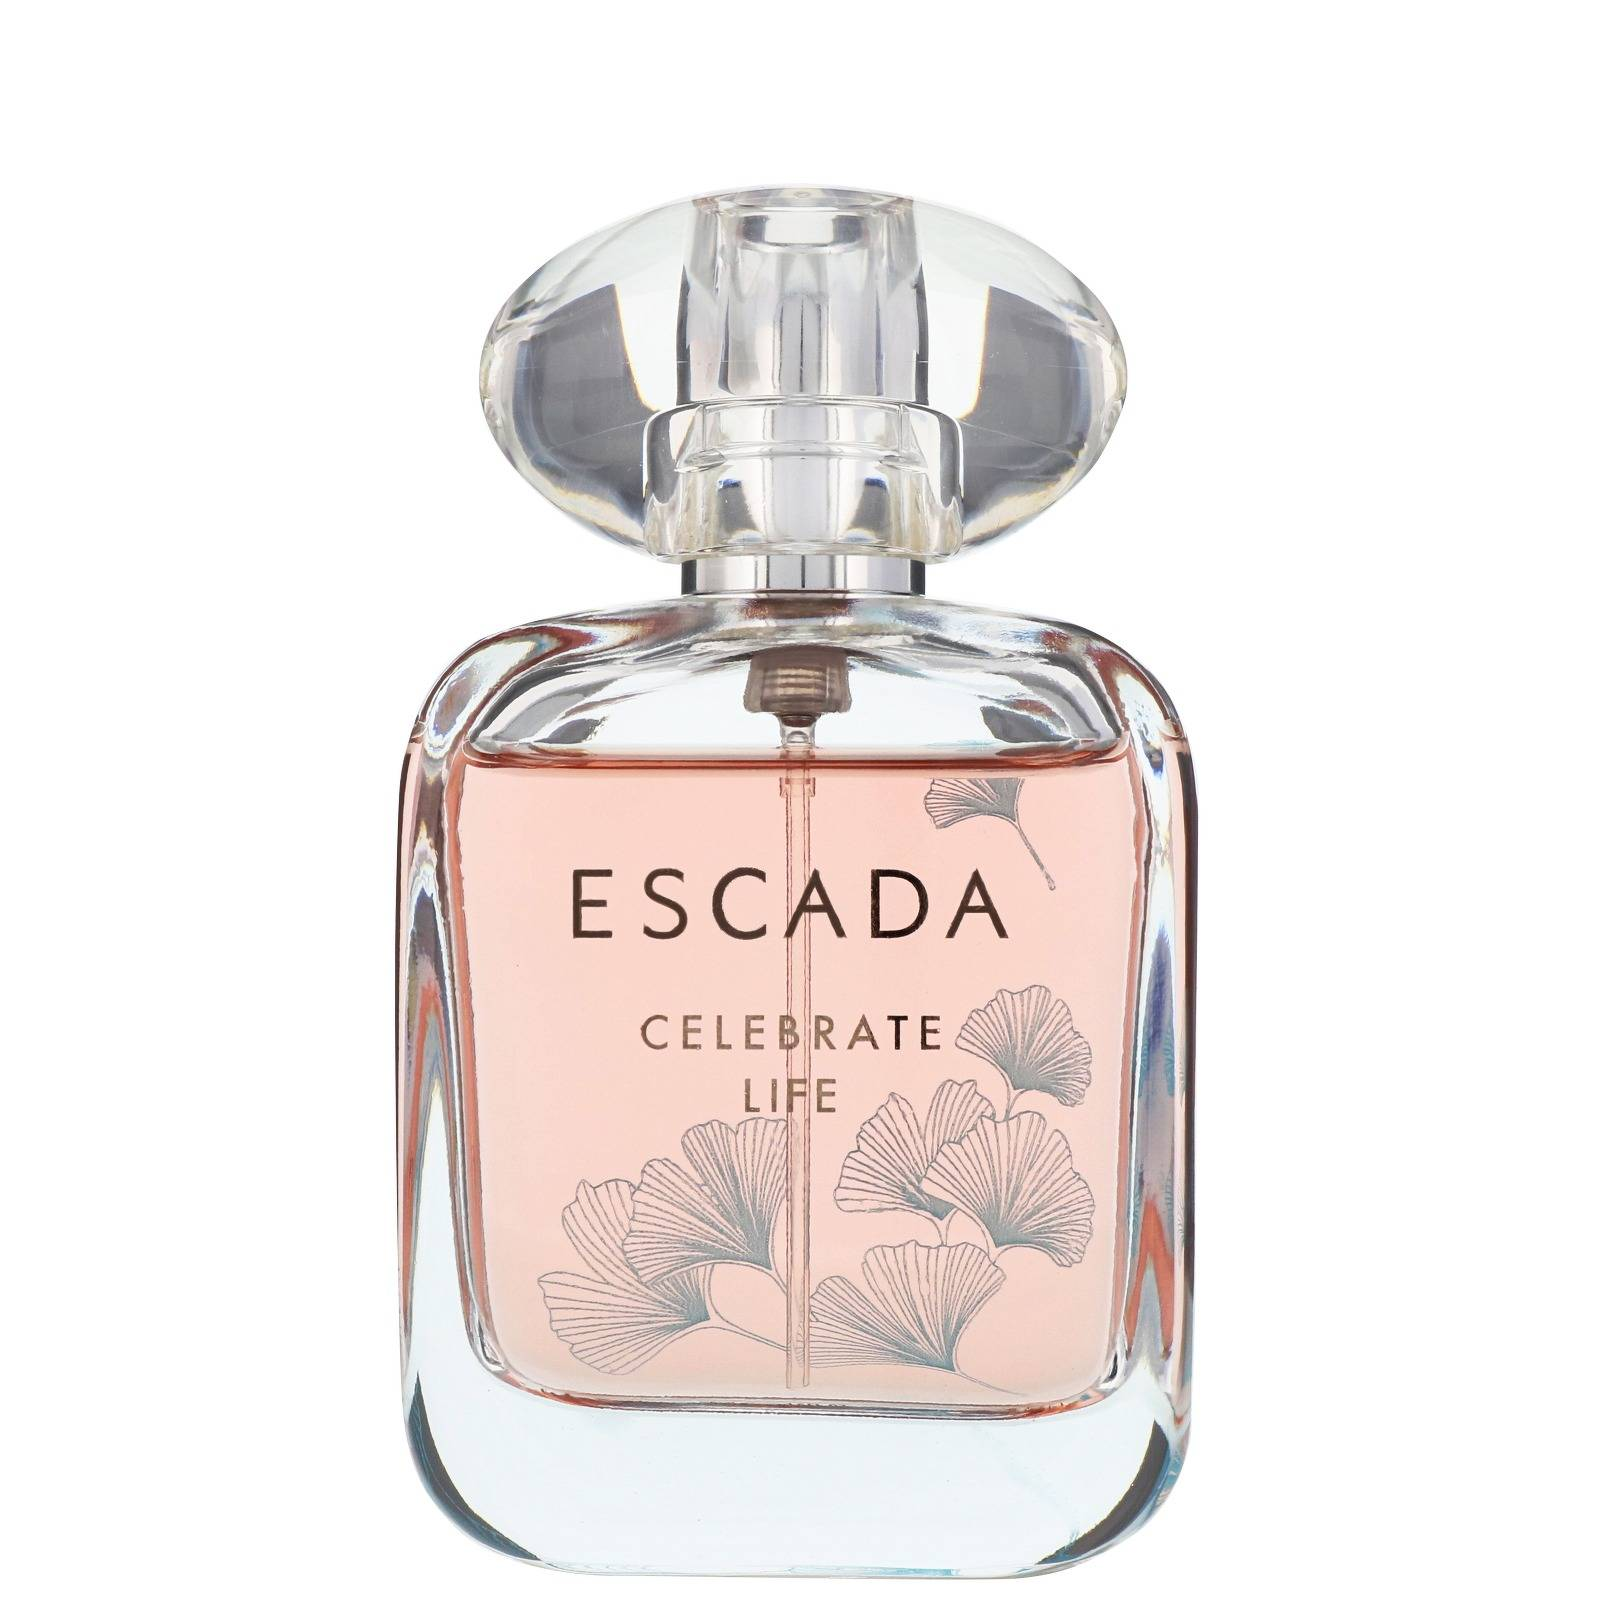 Escada Celebrate Life 50ml Eau de Parfum Spray